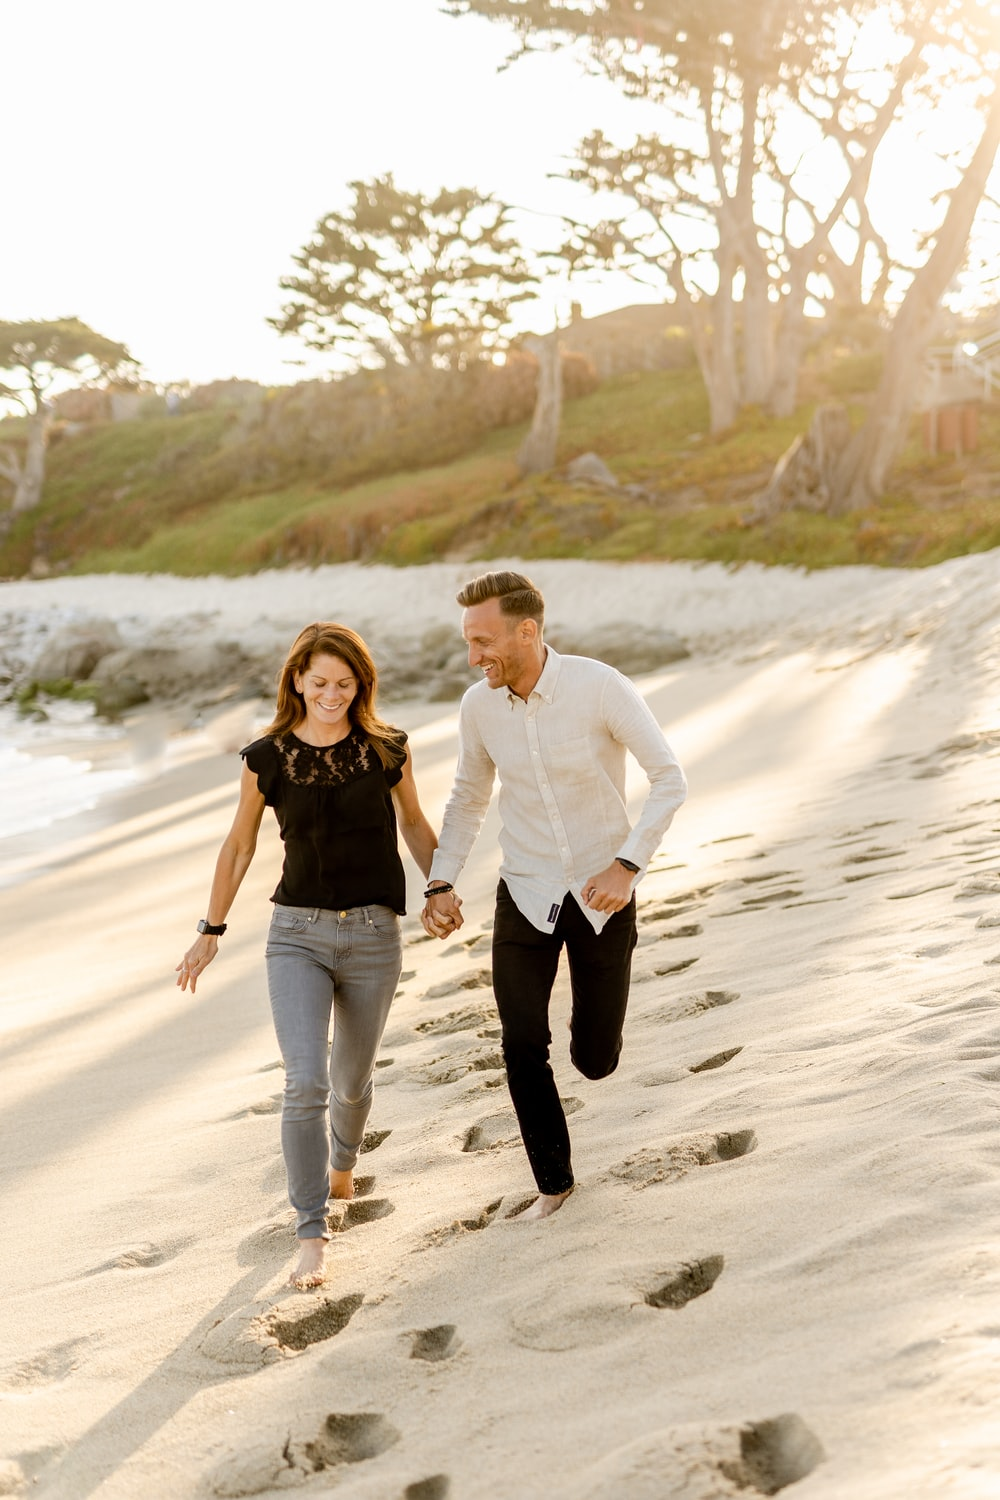 man in white dress shirt and woman in black dress walking on beach during daytime